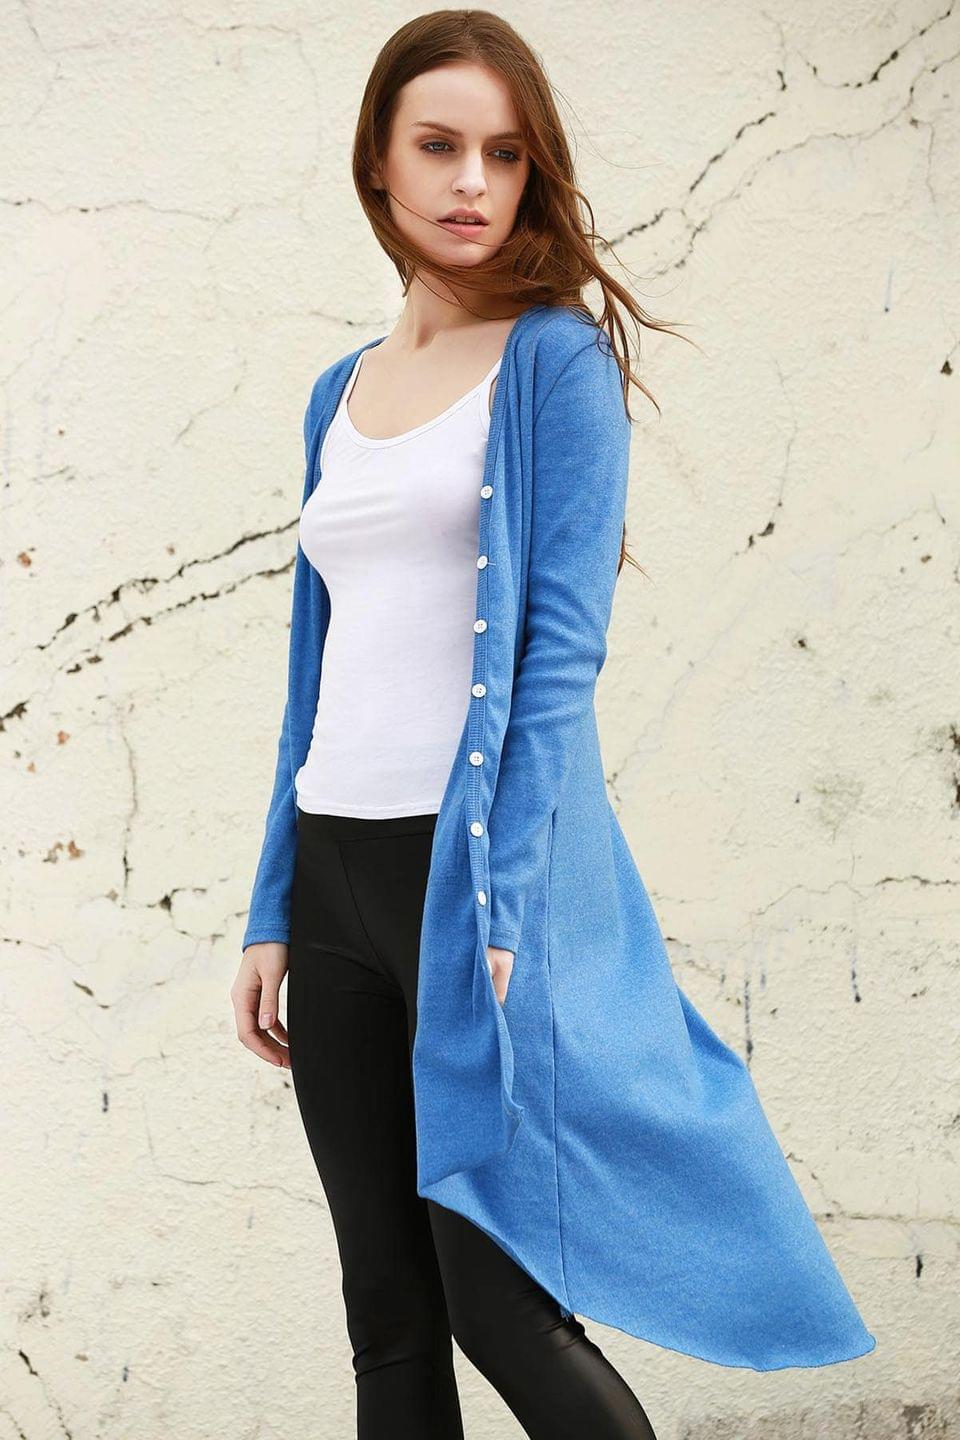 Women's Blue V Neck Long Sleeve Cardigan - Blue M